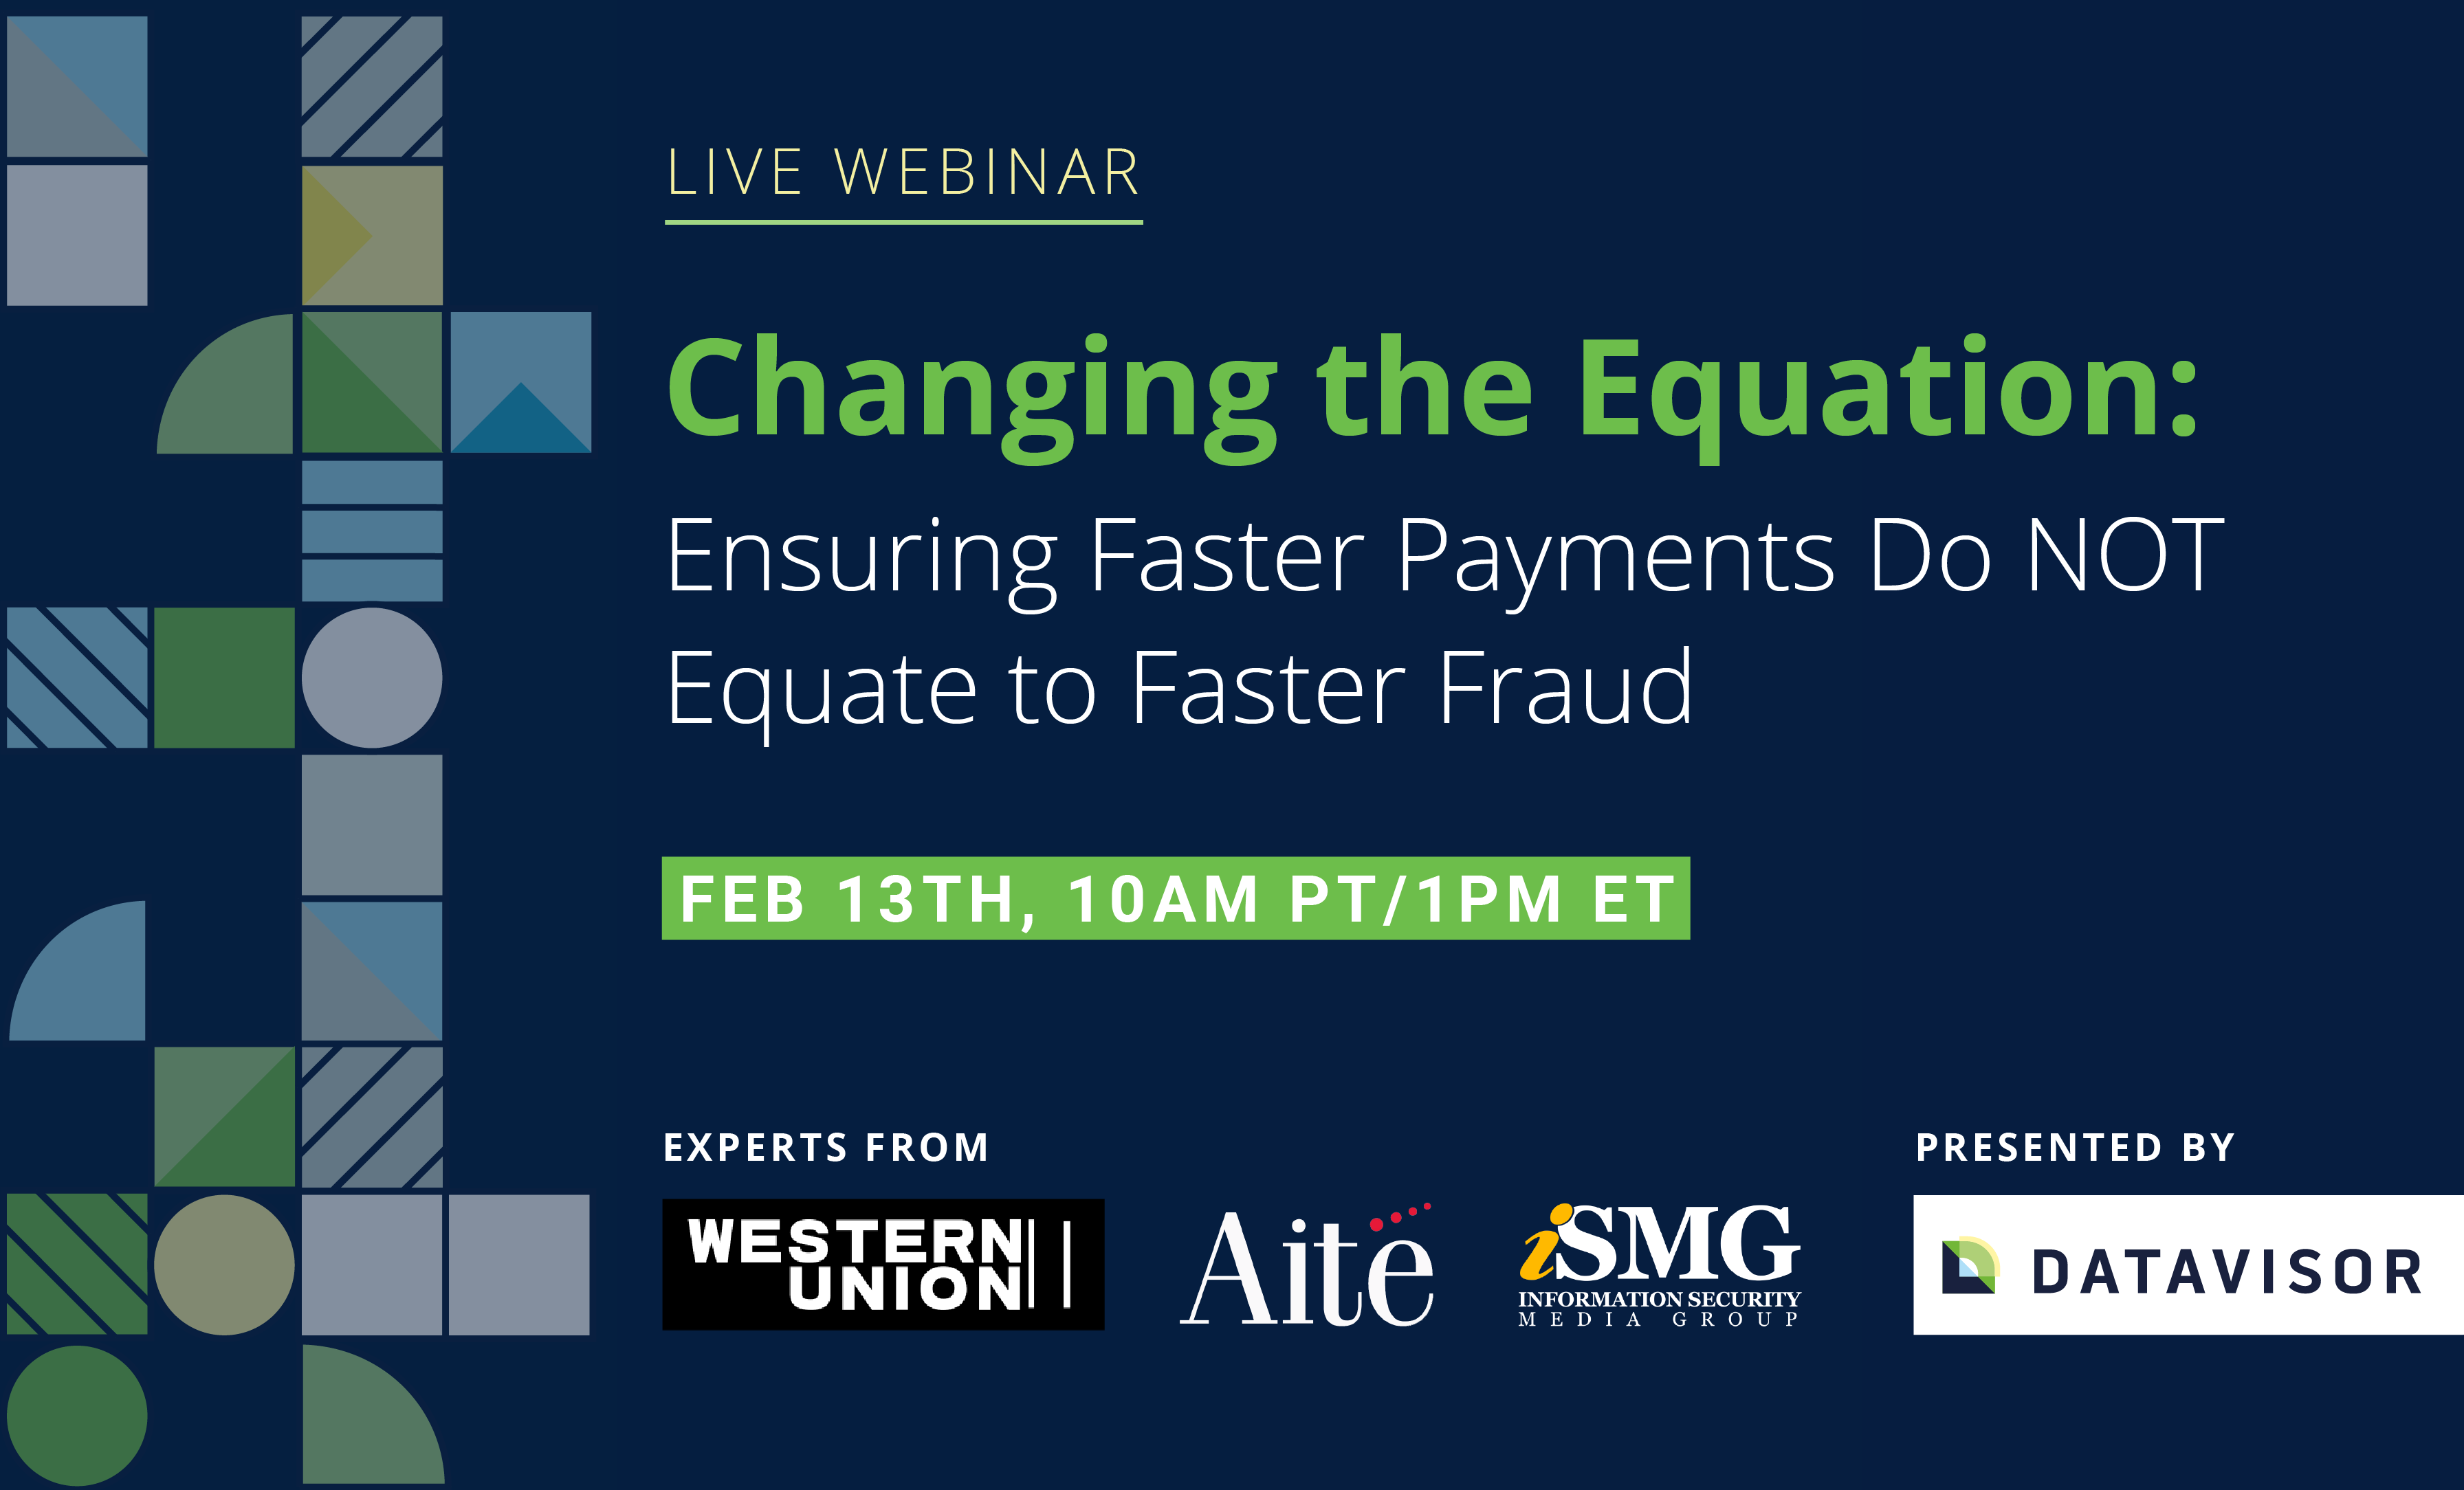 Changing the Equation: Ensuring Faster Payments Do NOT Equate to Faster Fraud